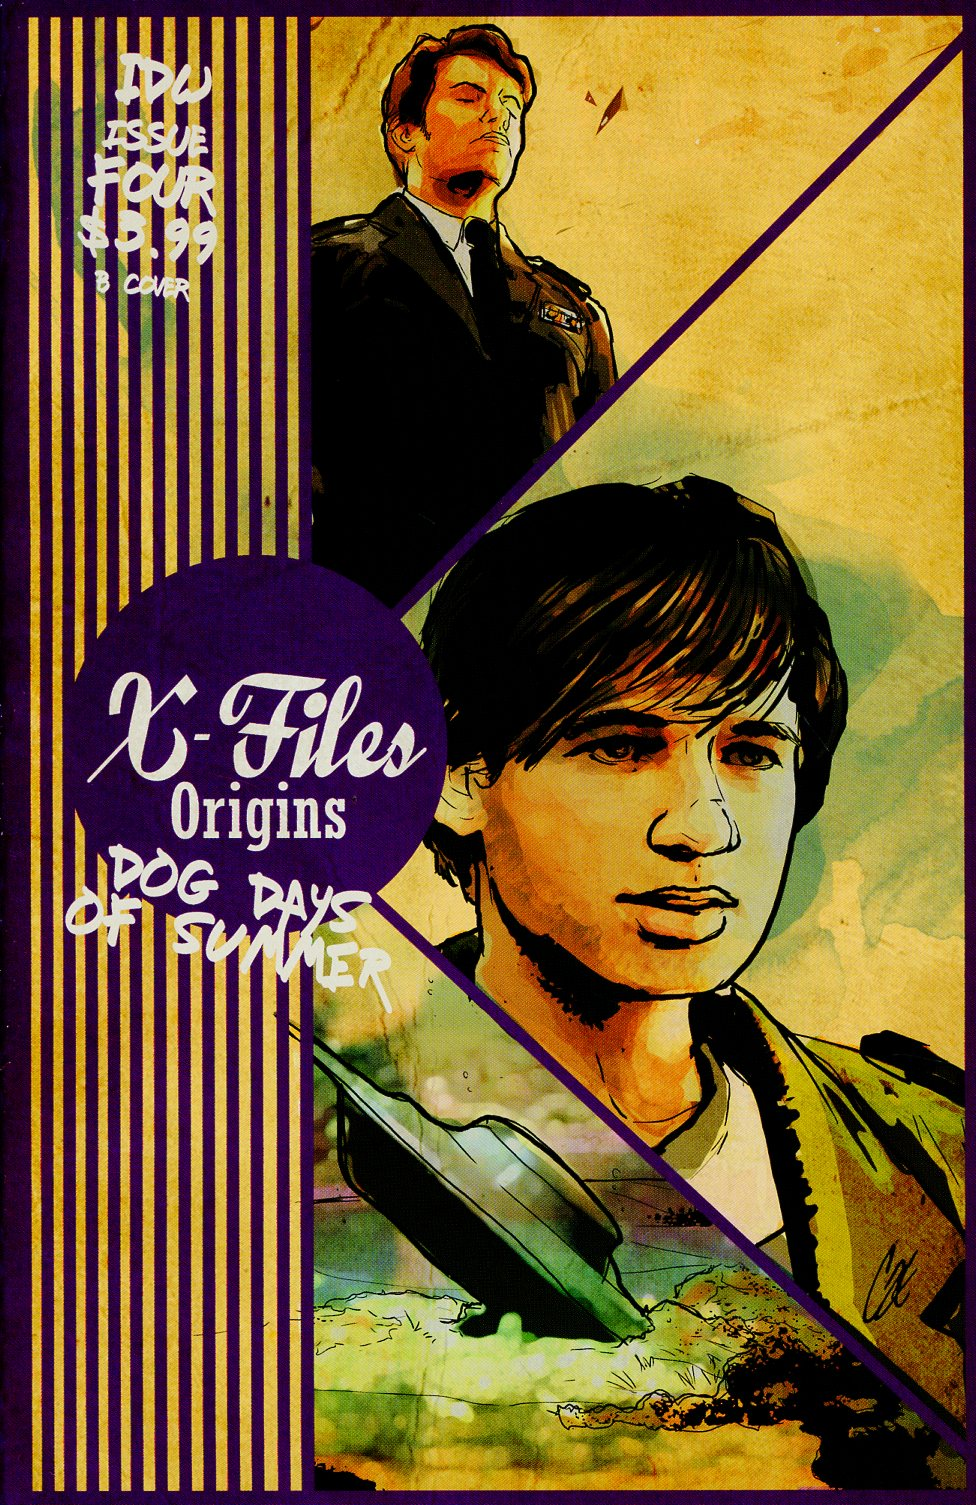 X-Files Origins II Dog Days Of Summer #4 Cover B Variant Cat Staggs Cover